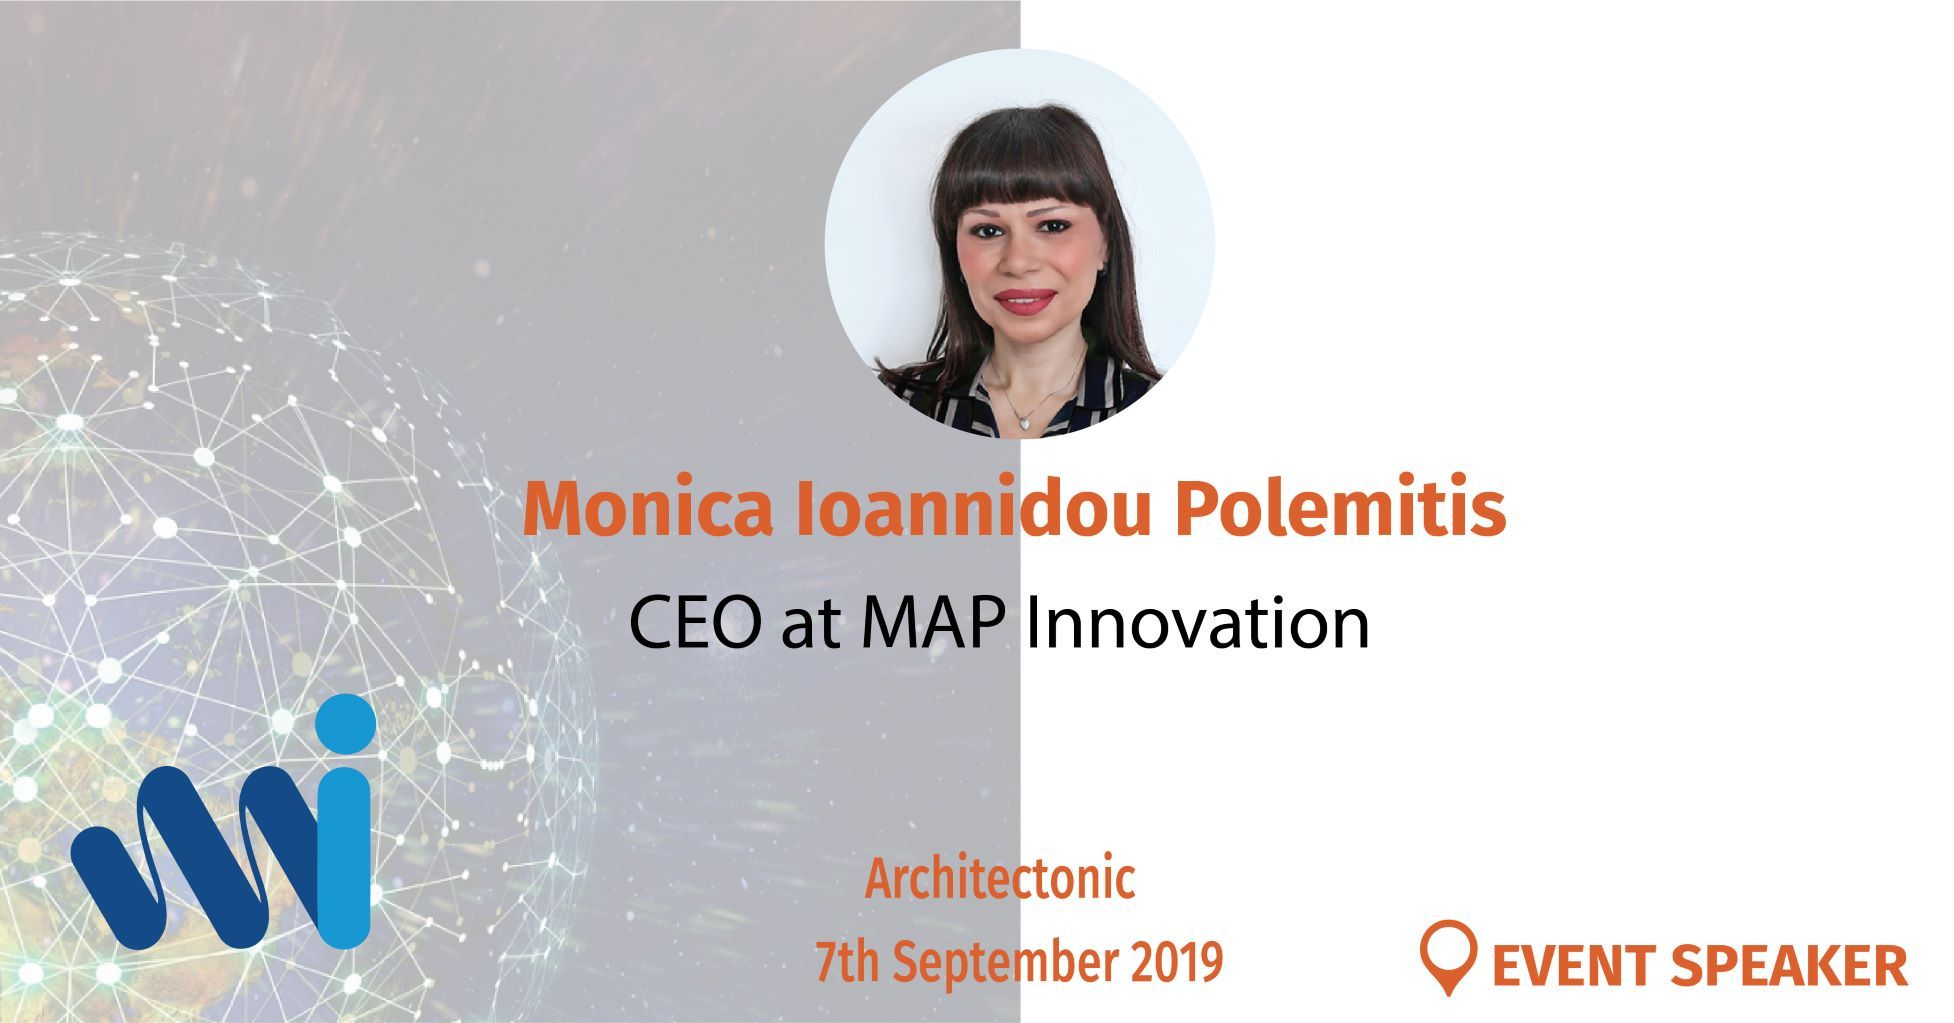 The construction industry in the digital age - Monica Ioannidou Polemitis